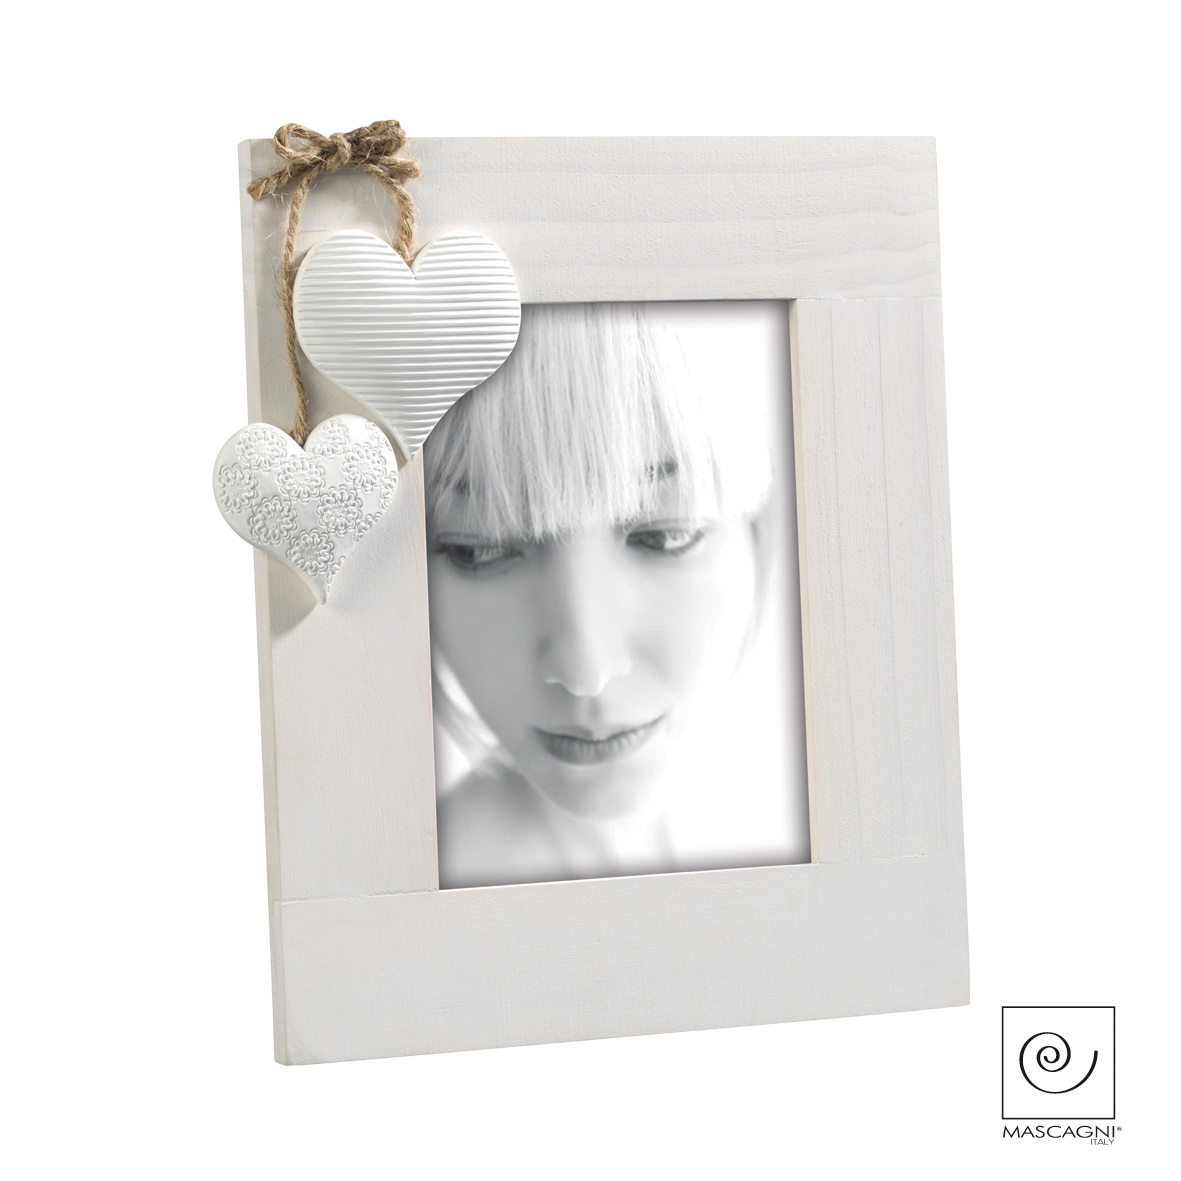 Art Mascagni A100 PHOTO FRAME 13X18 - COL.WHITE